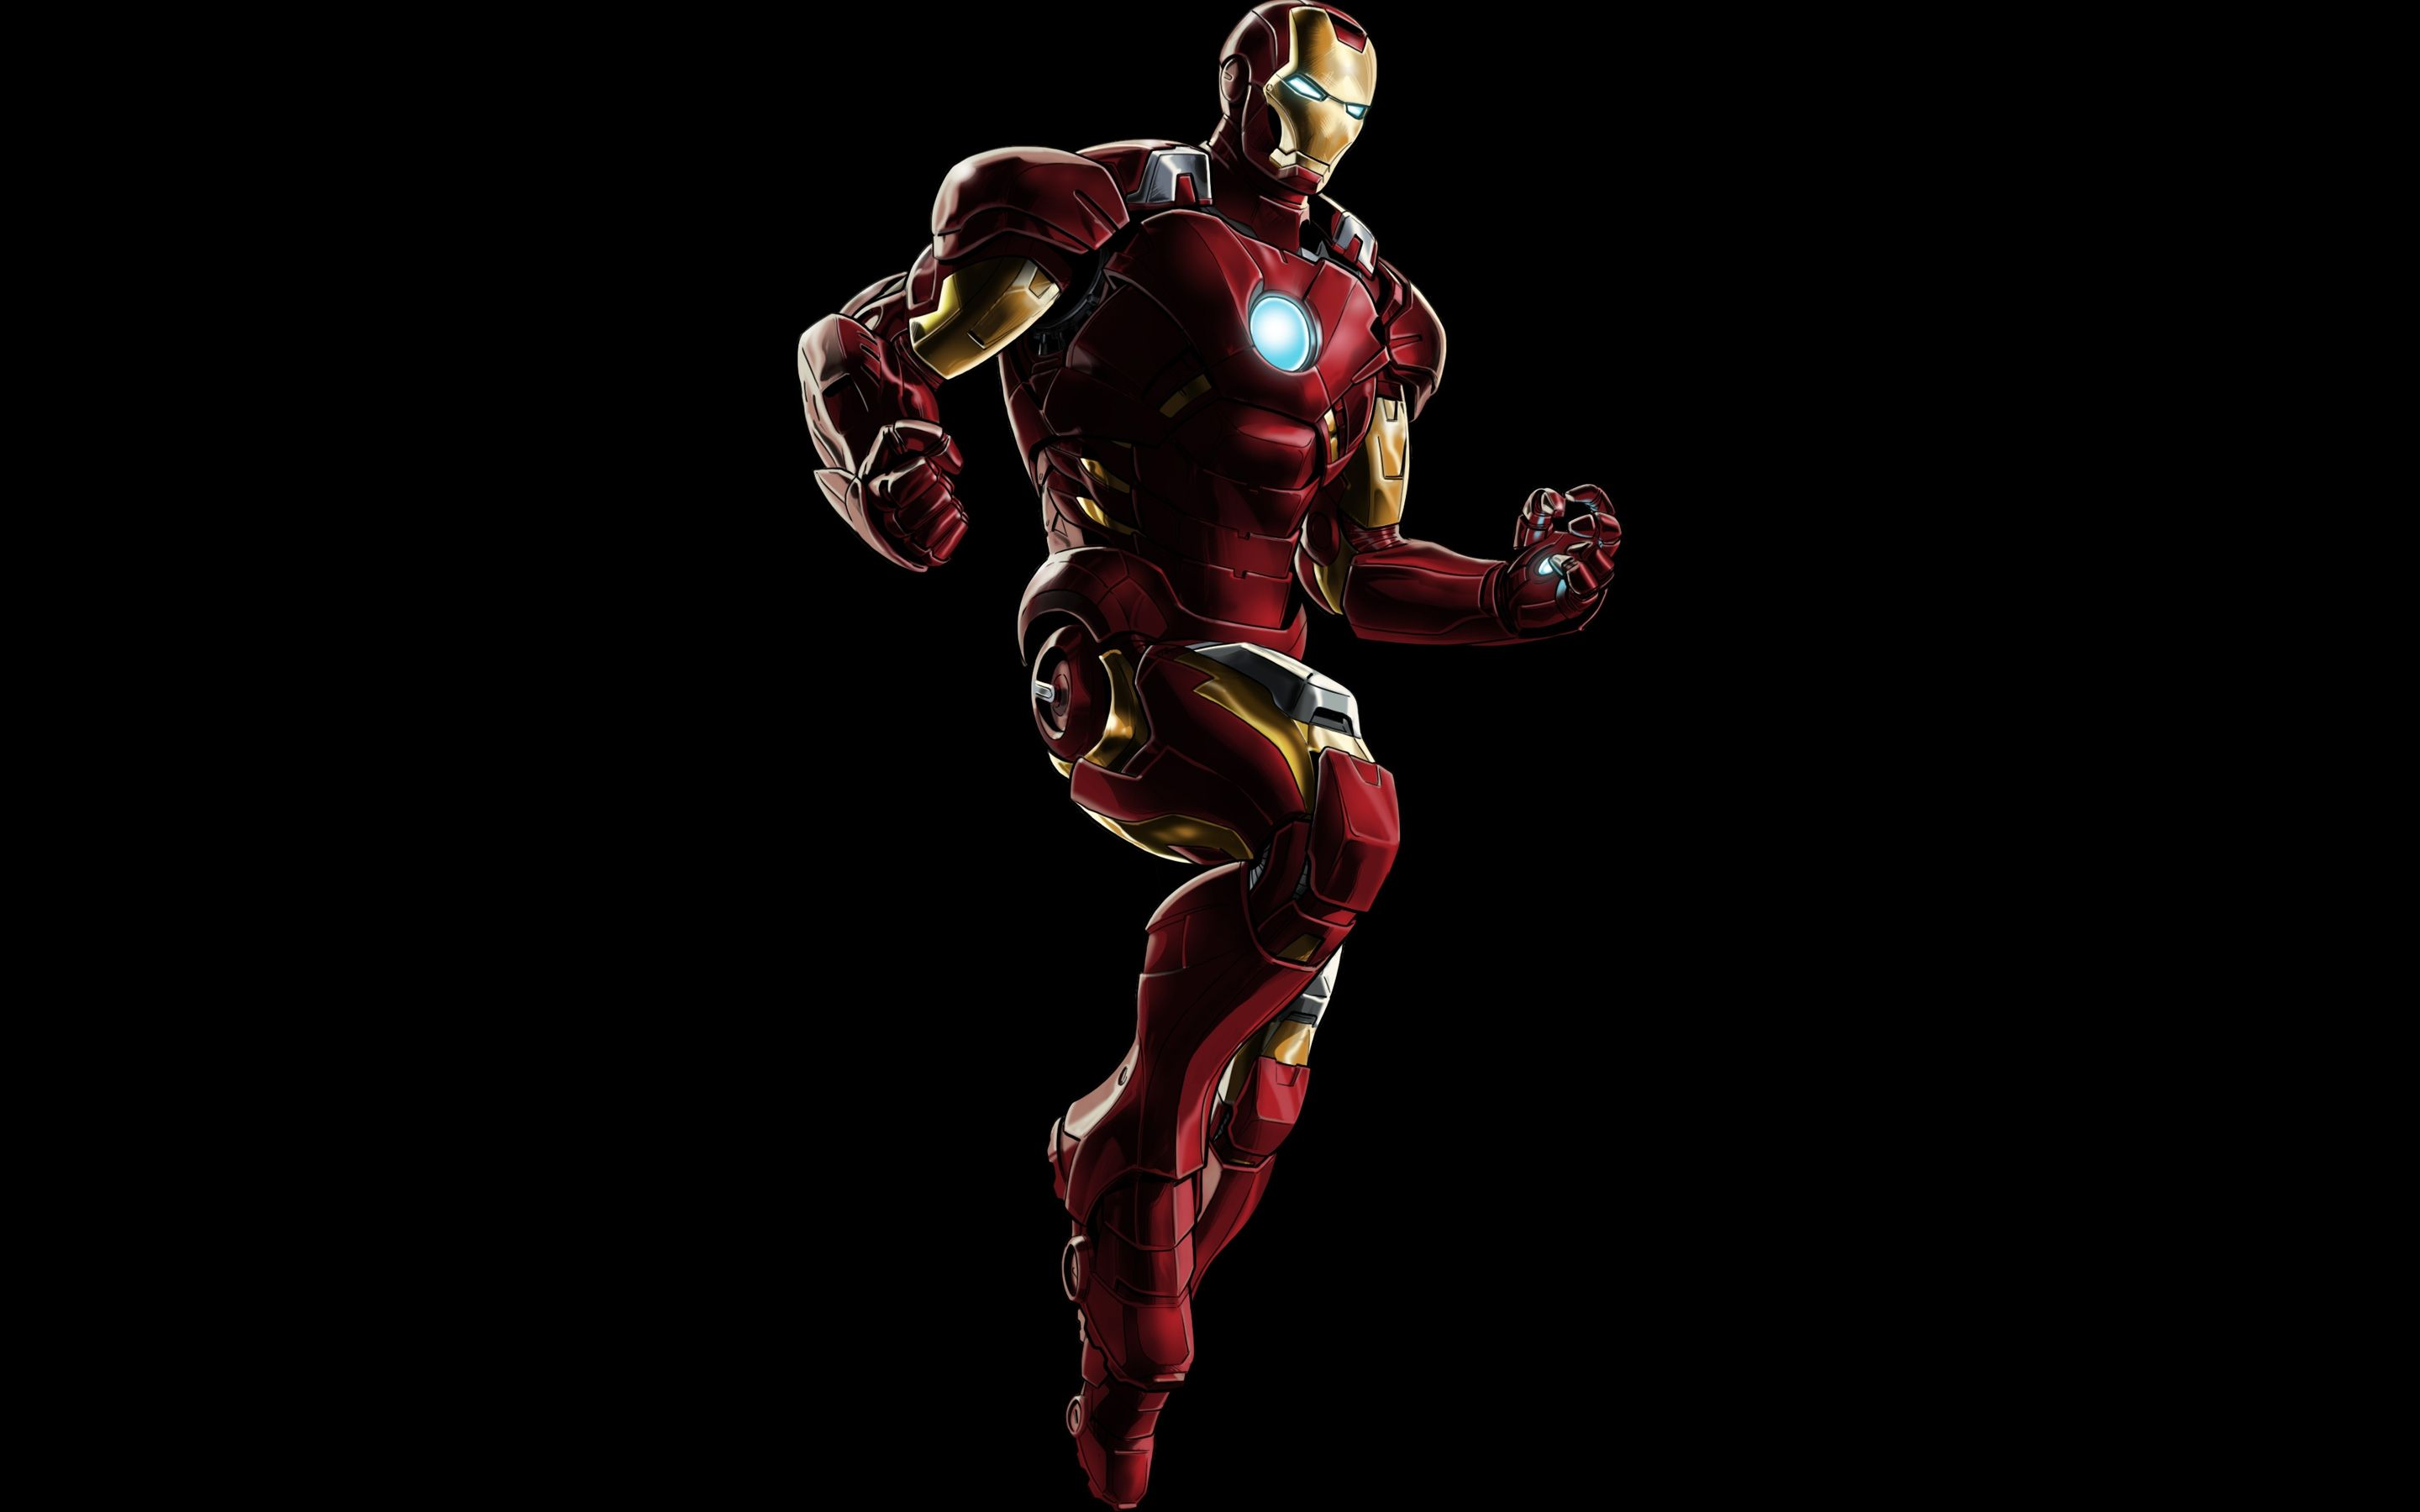 4k Iron Man Iron Man Hd Wallpaper Iron Man Wallpaper Man Wallpaper